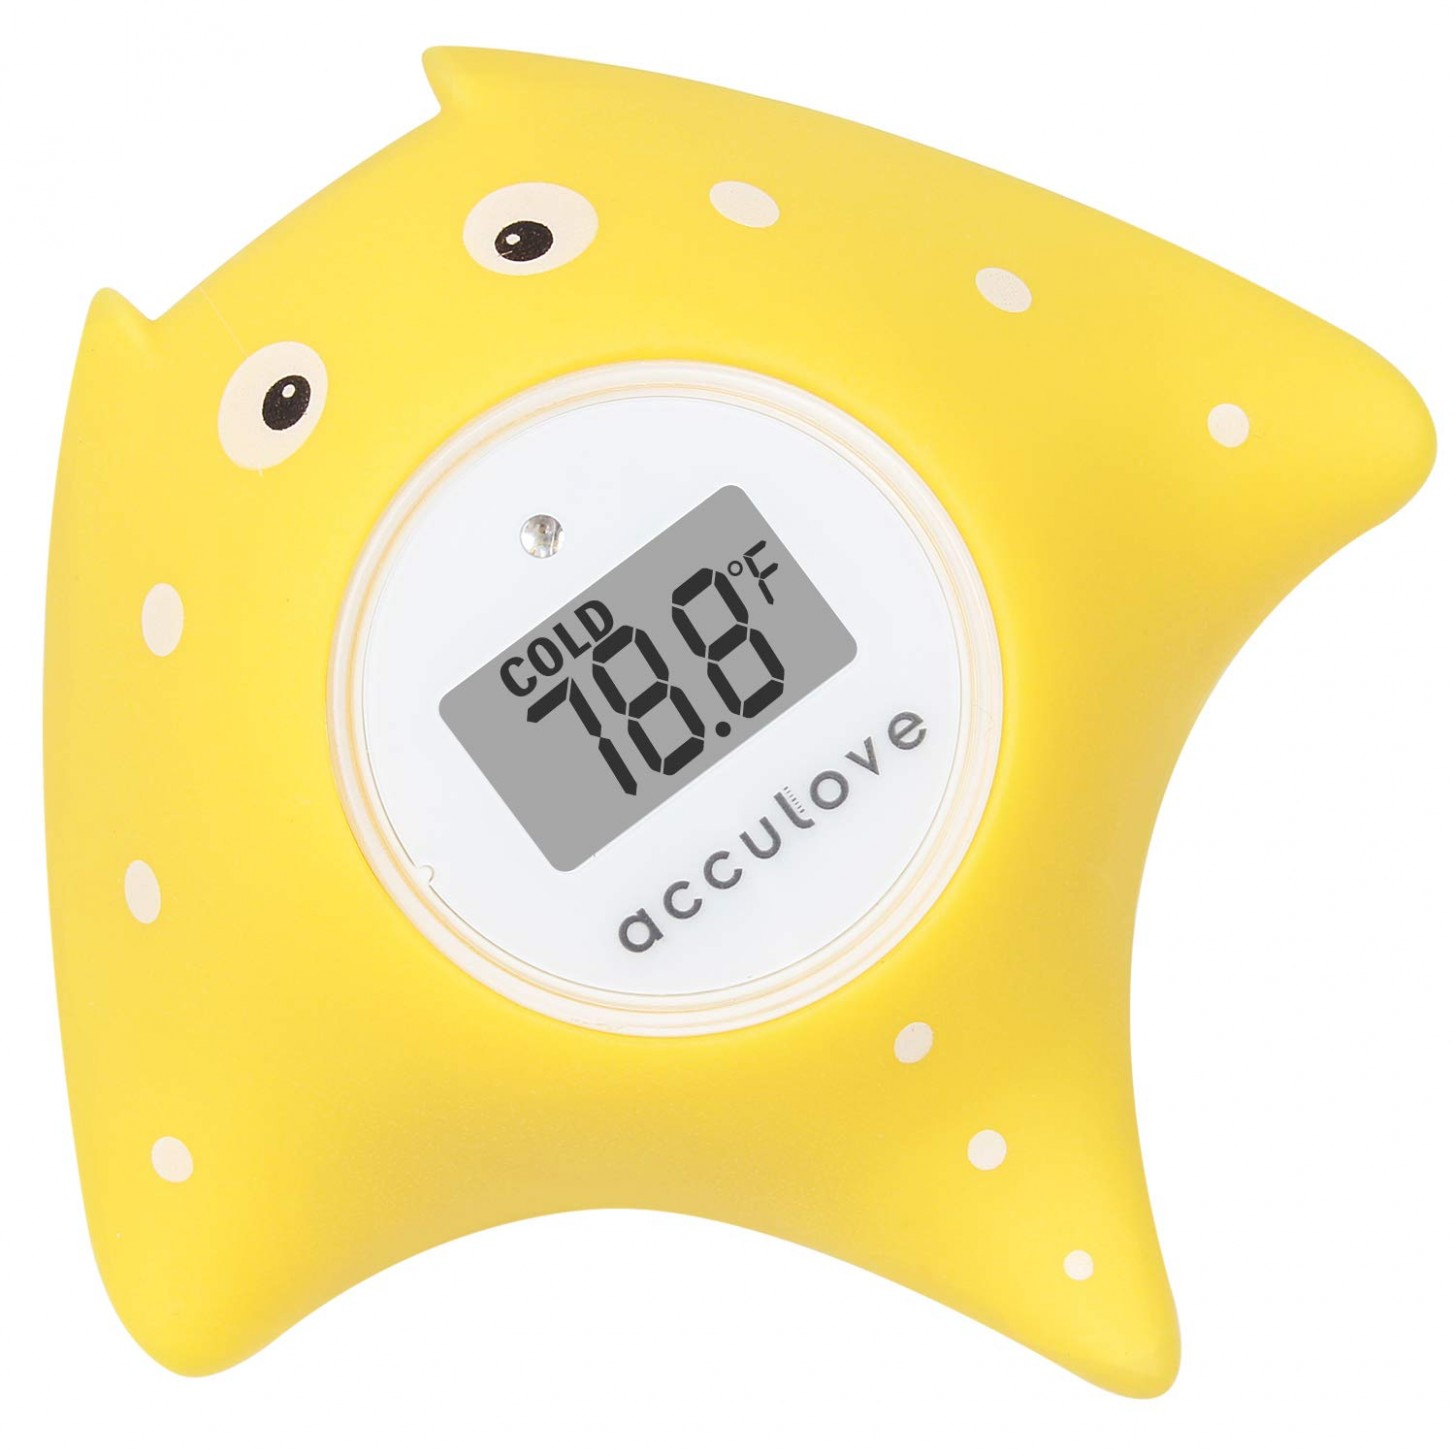 Acculove Baby Bath and Room Thermometer, Floating Bath Thermometer for  Bathtub and Swimming Pool, Yellow Fish Cartoon Outlook, Safe Toy for  Babies,  - Baby Room Thermometer